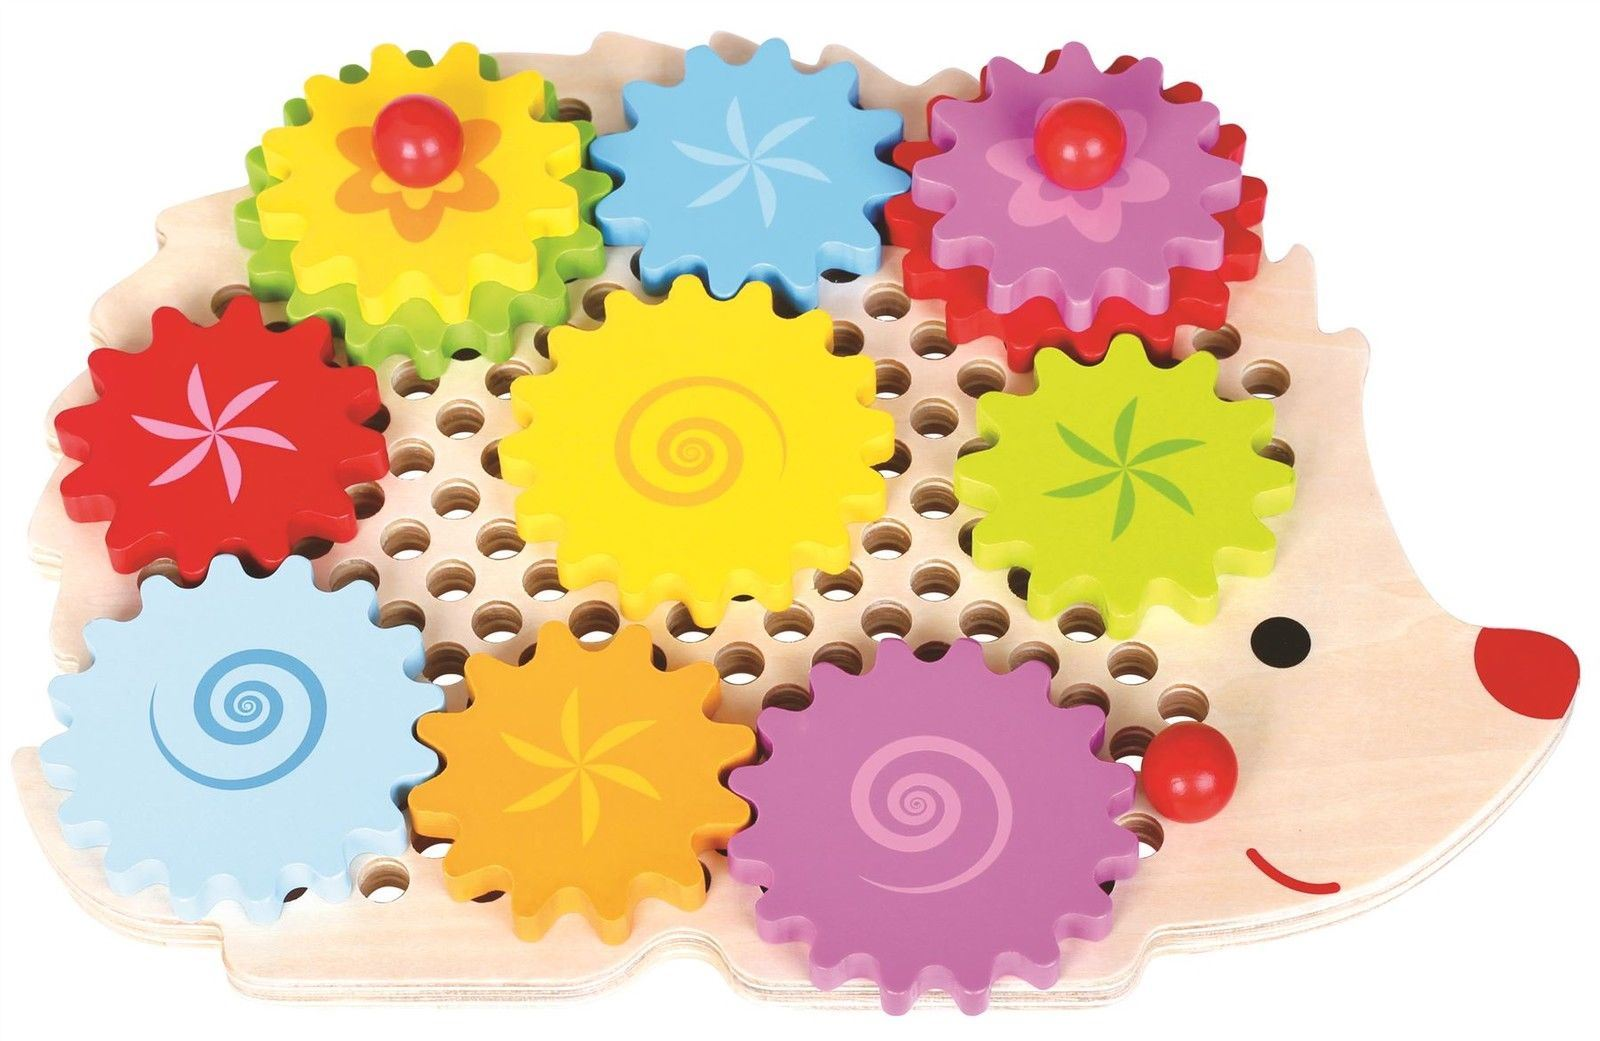 Details about Lelin Wooden Hedgehog Learning Spinning Gears and Cogs Childrens Toy Set